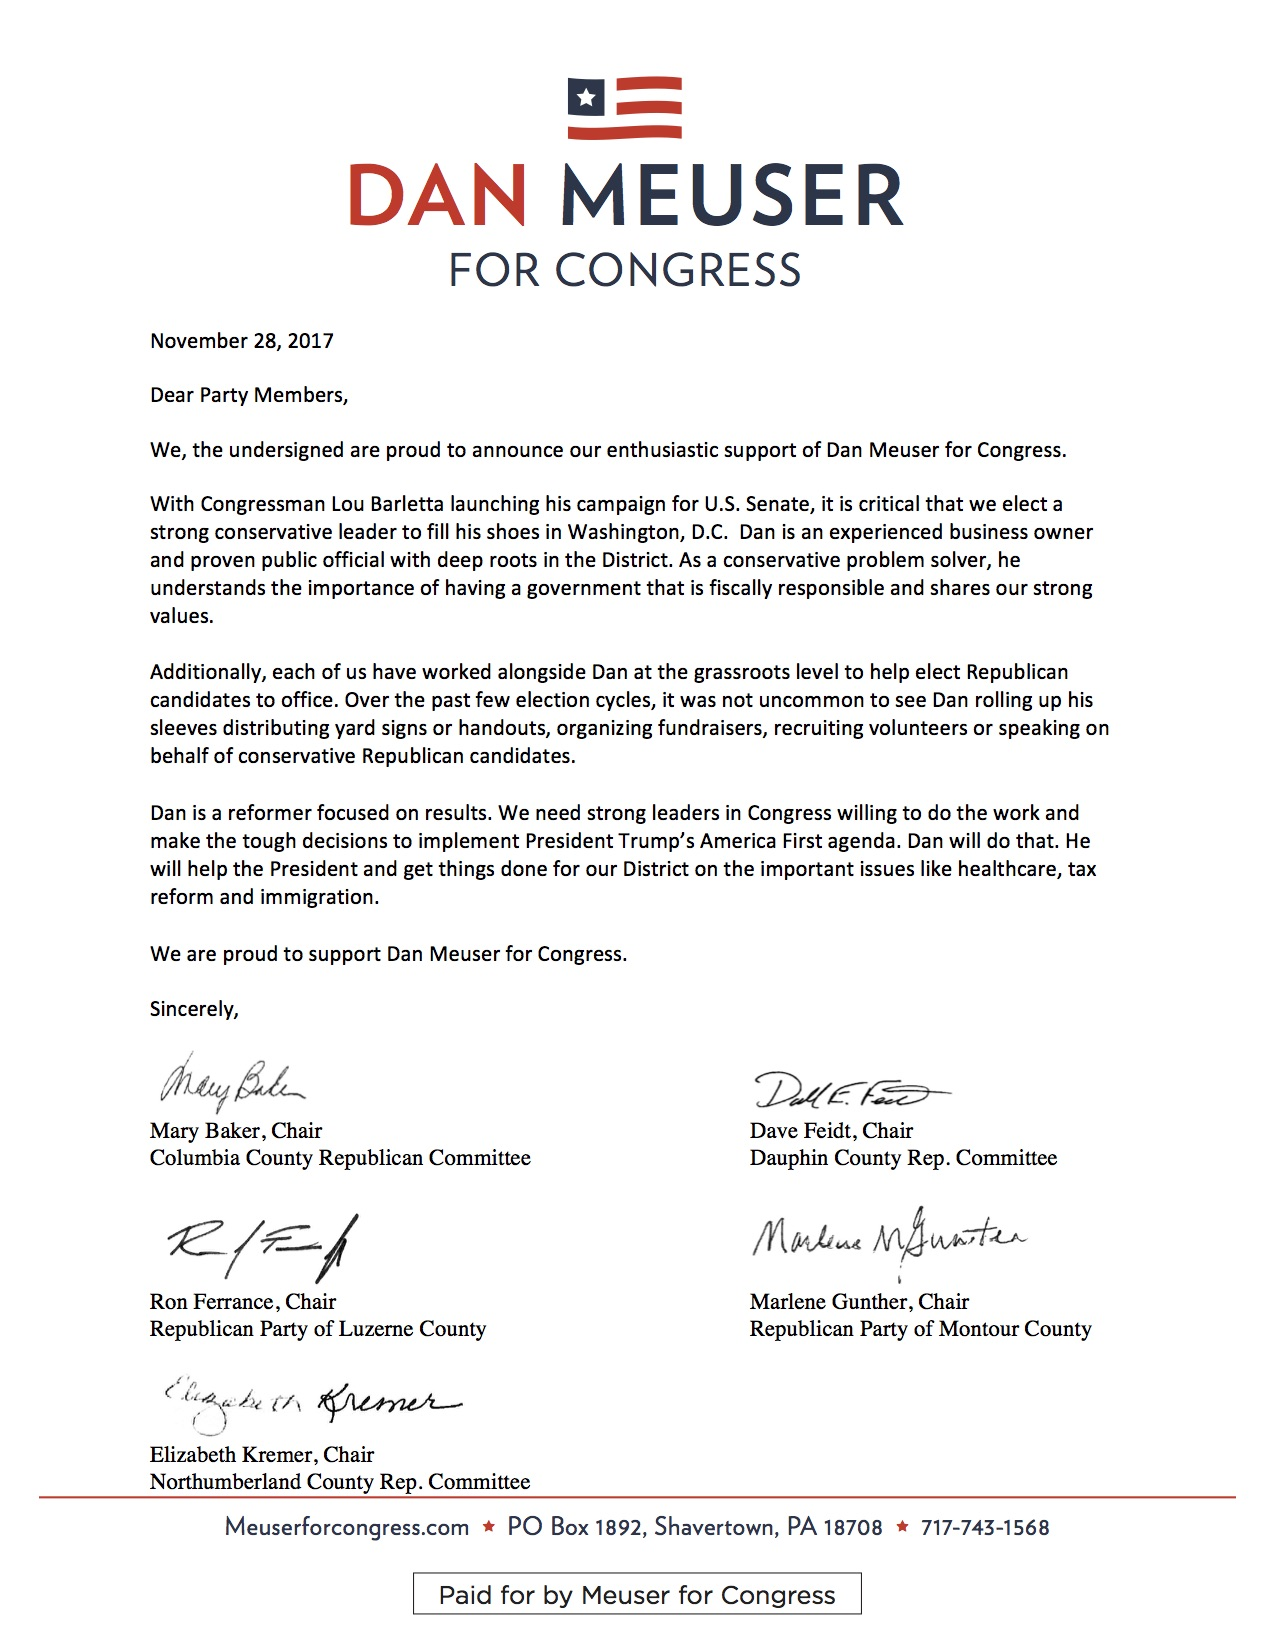 County Chair Endorsement Letter